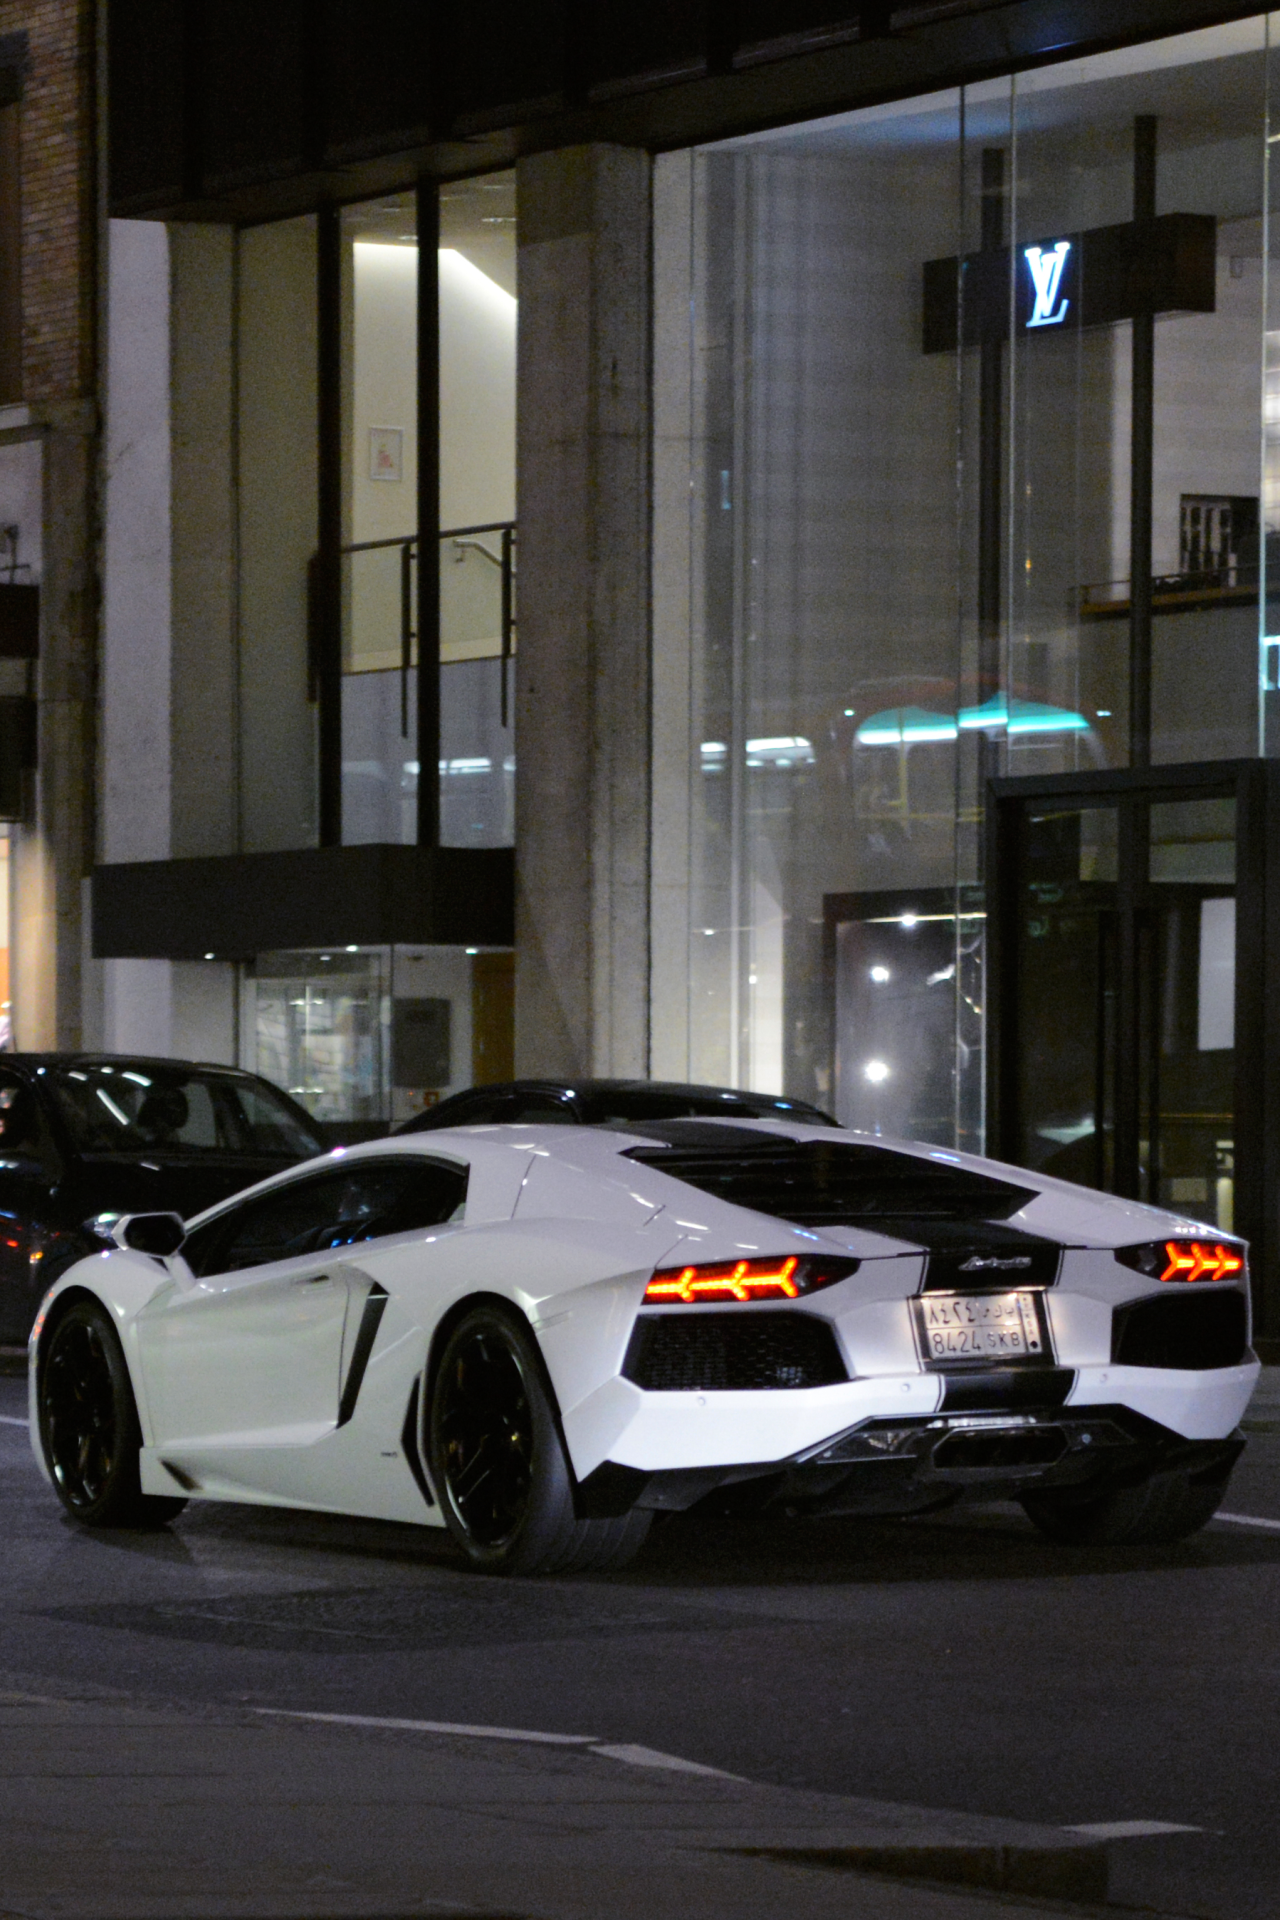 Lamborghini Night Super Cars Luxury Cars Lambo